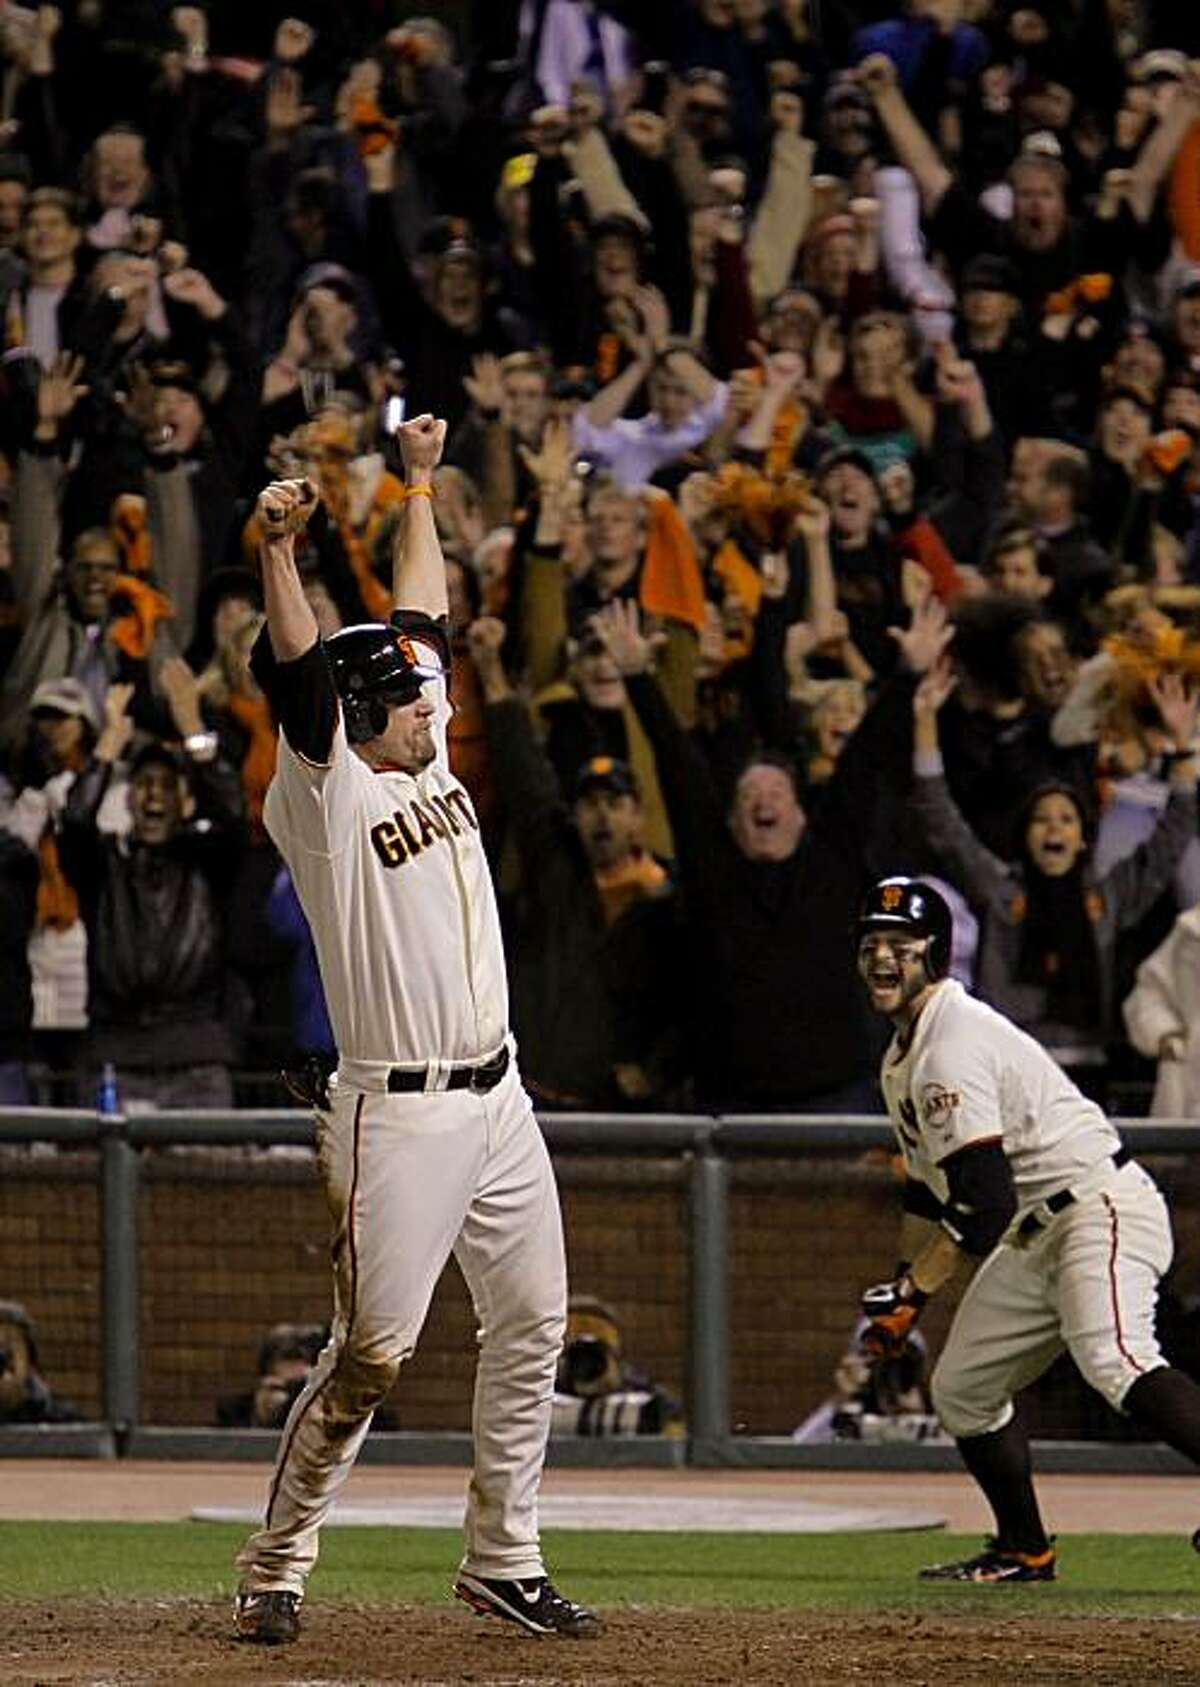 Cody Ross and the fans went wild as Aubrey Huff scored the winning run in Game 4 of the NL Championship Series.